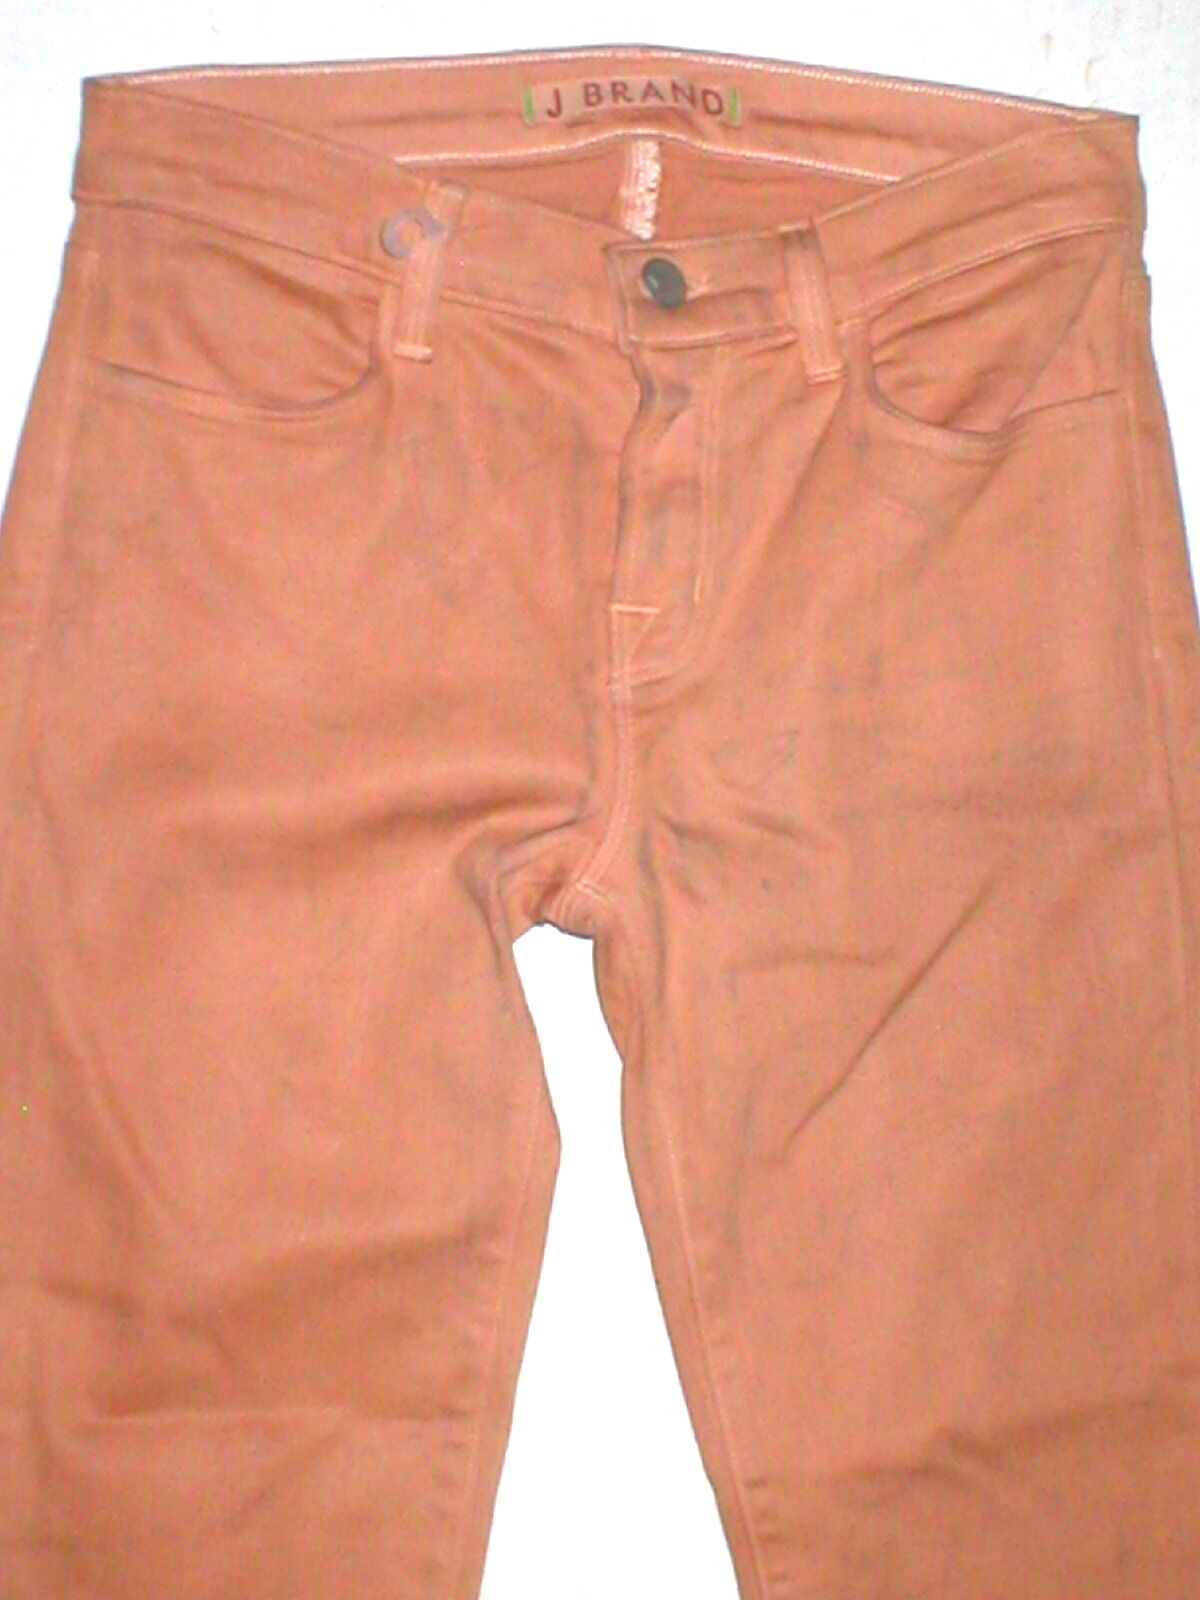 New J Brand Jeans Skinny Womens Coated Peach Leather Mid 26 Tigers Eye Pants USA image 3